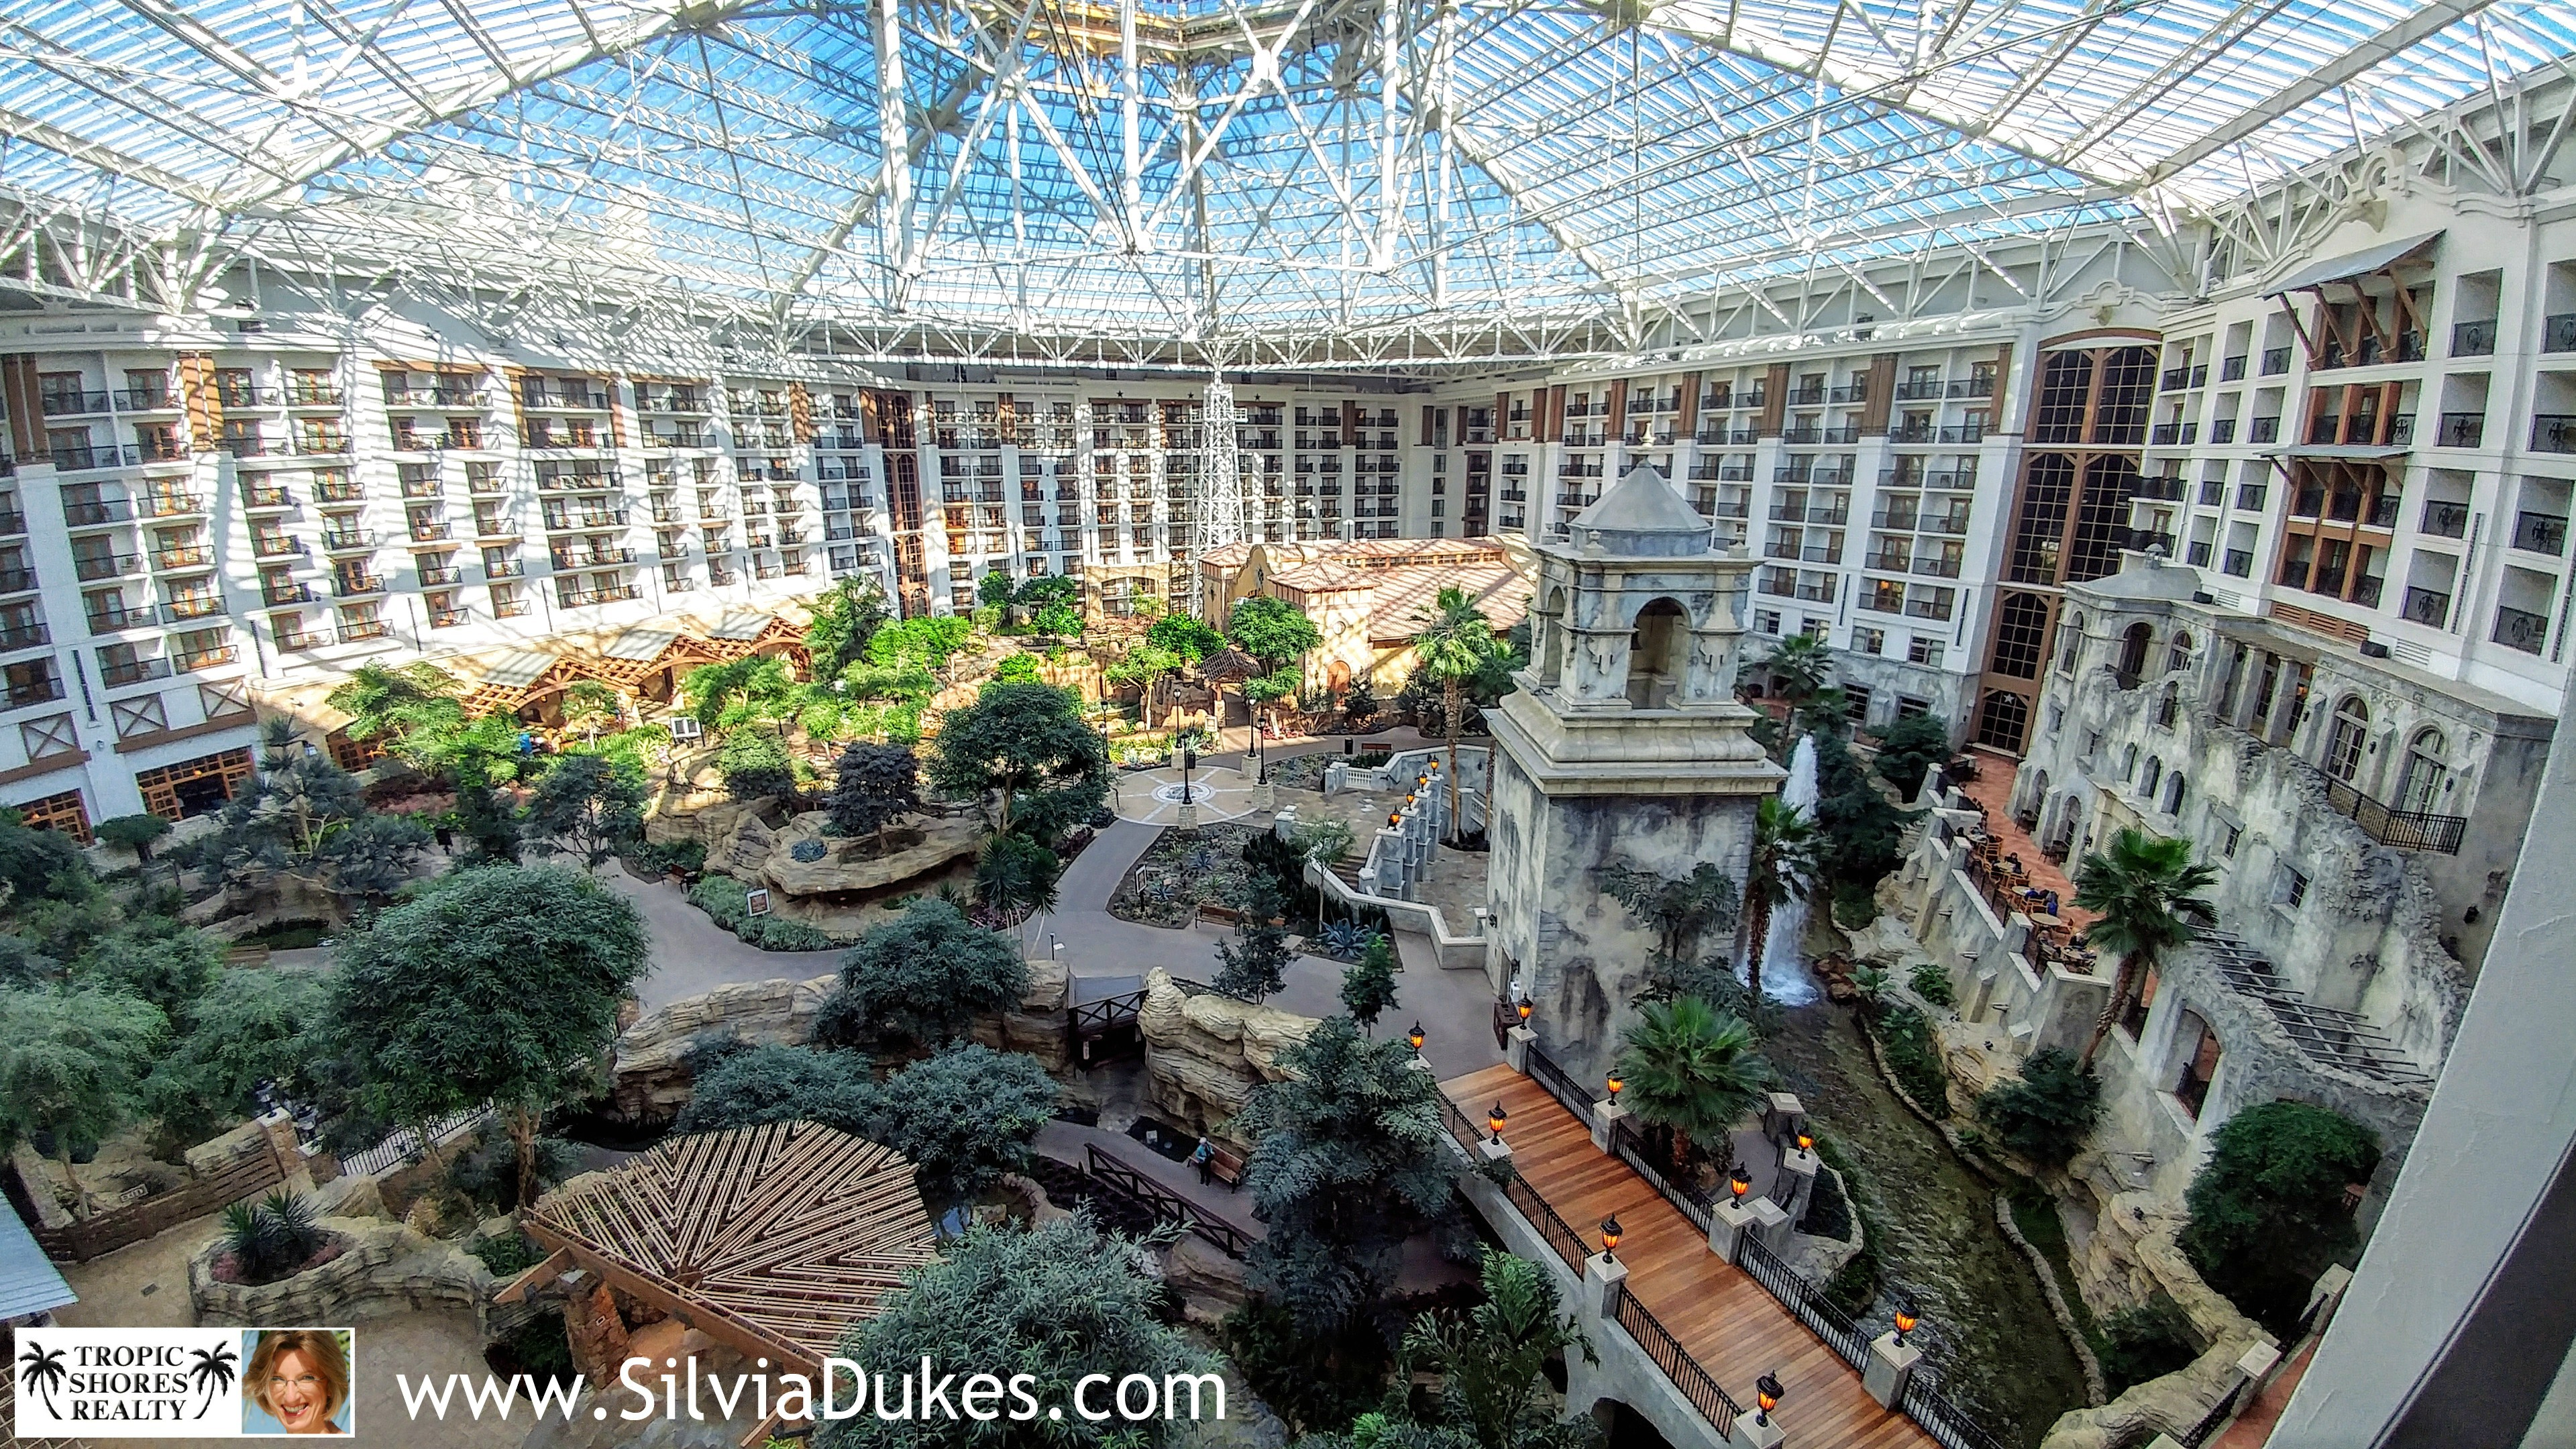 Gaylord Texan Resort in Dallas Photo by Silvia Dukes